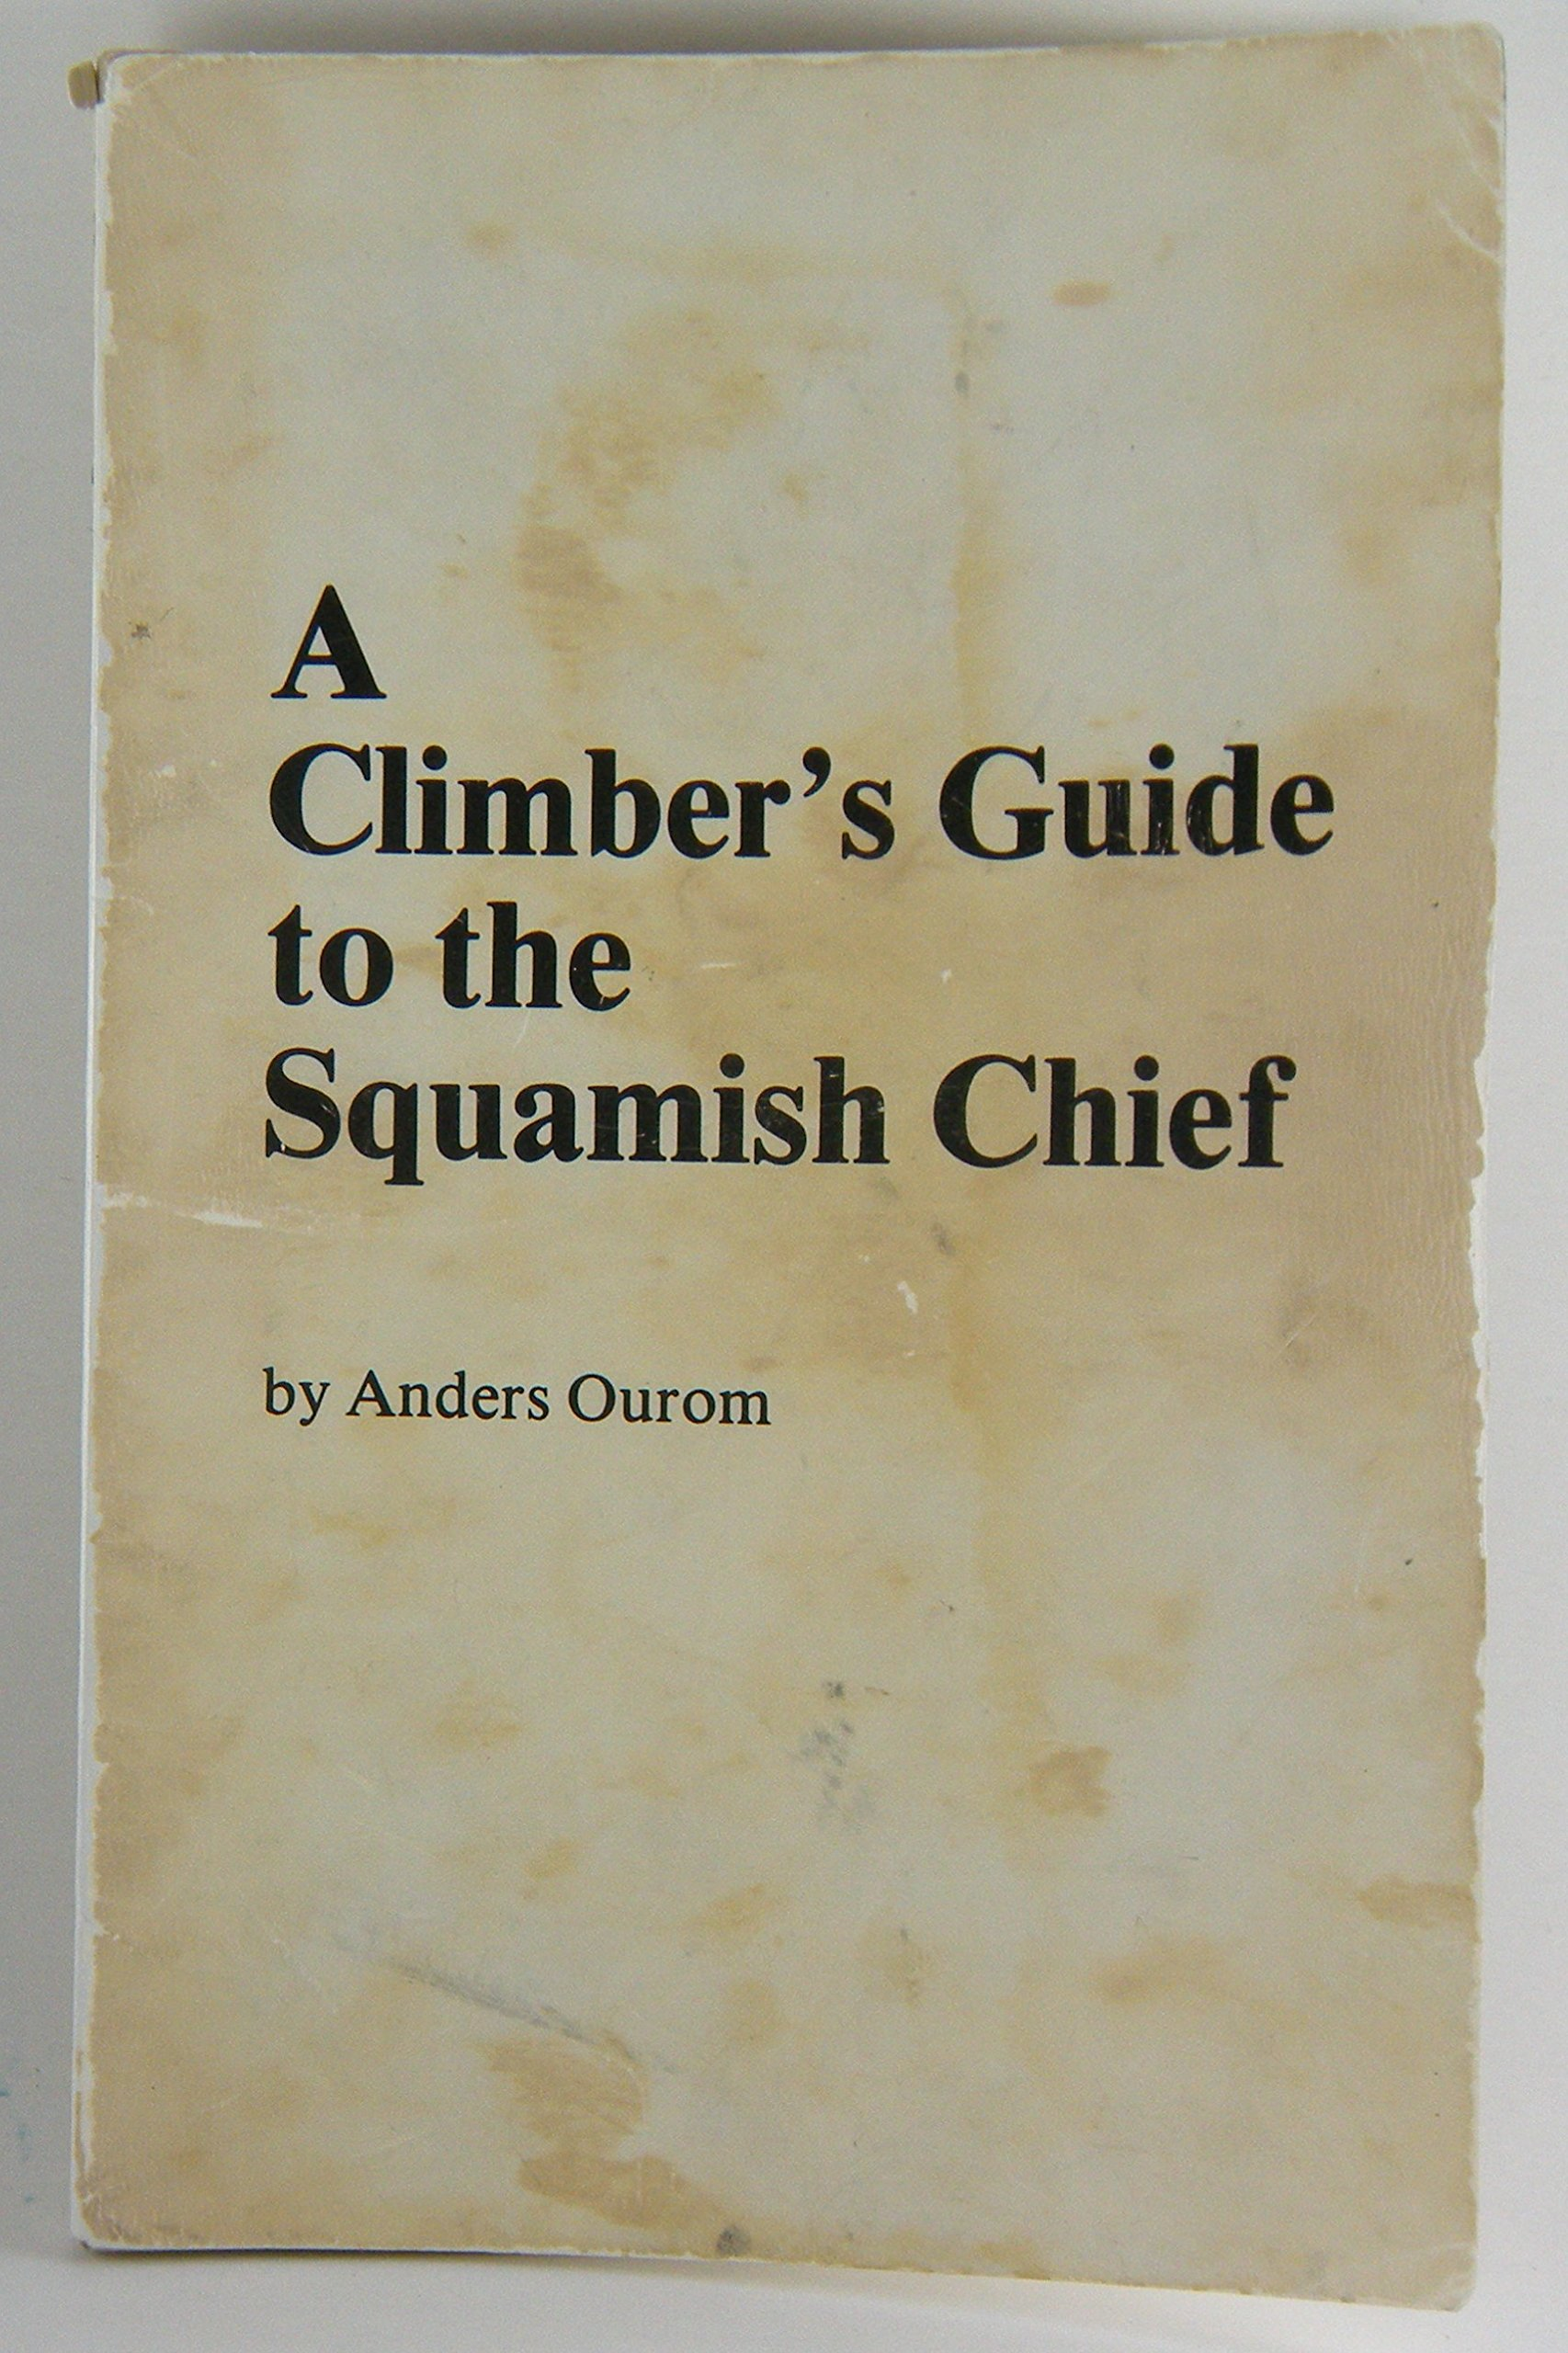 A Climber's Guide to The Squamish Chief